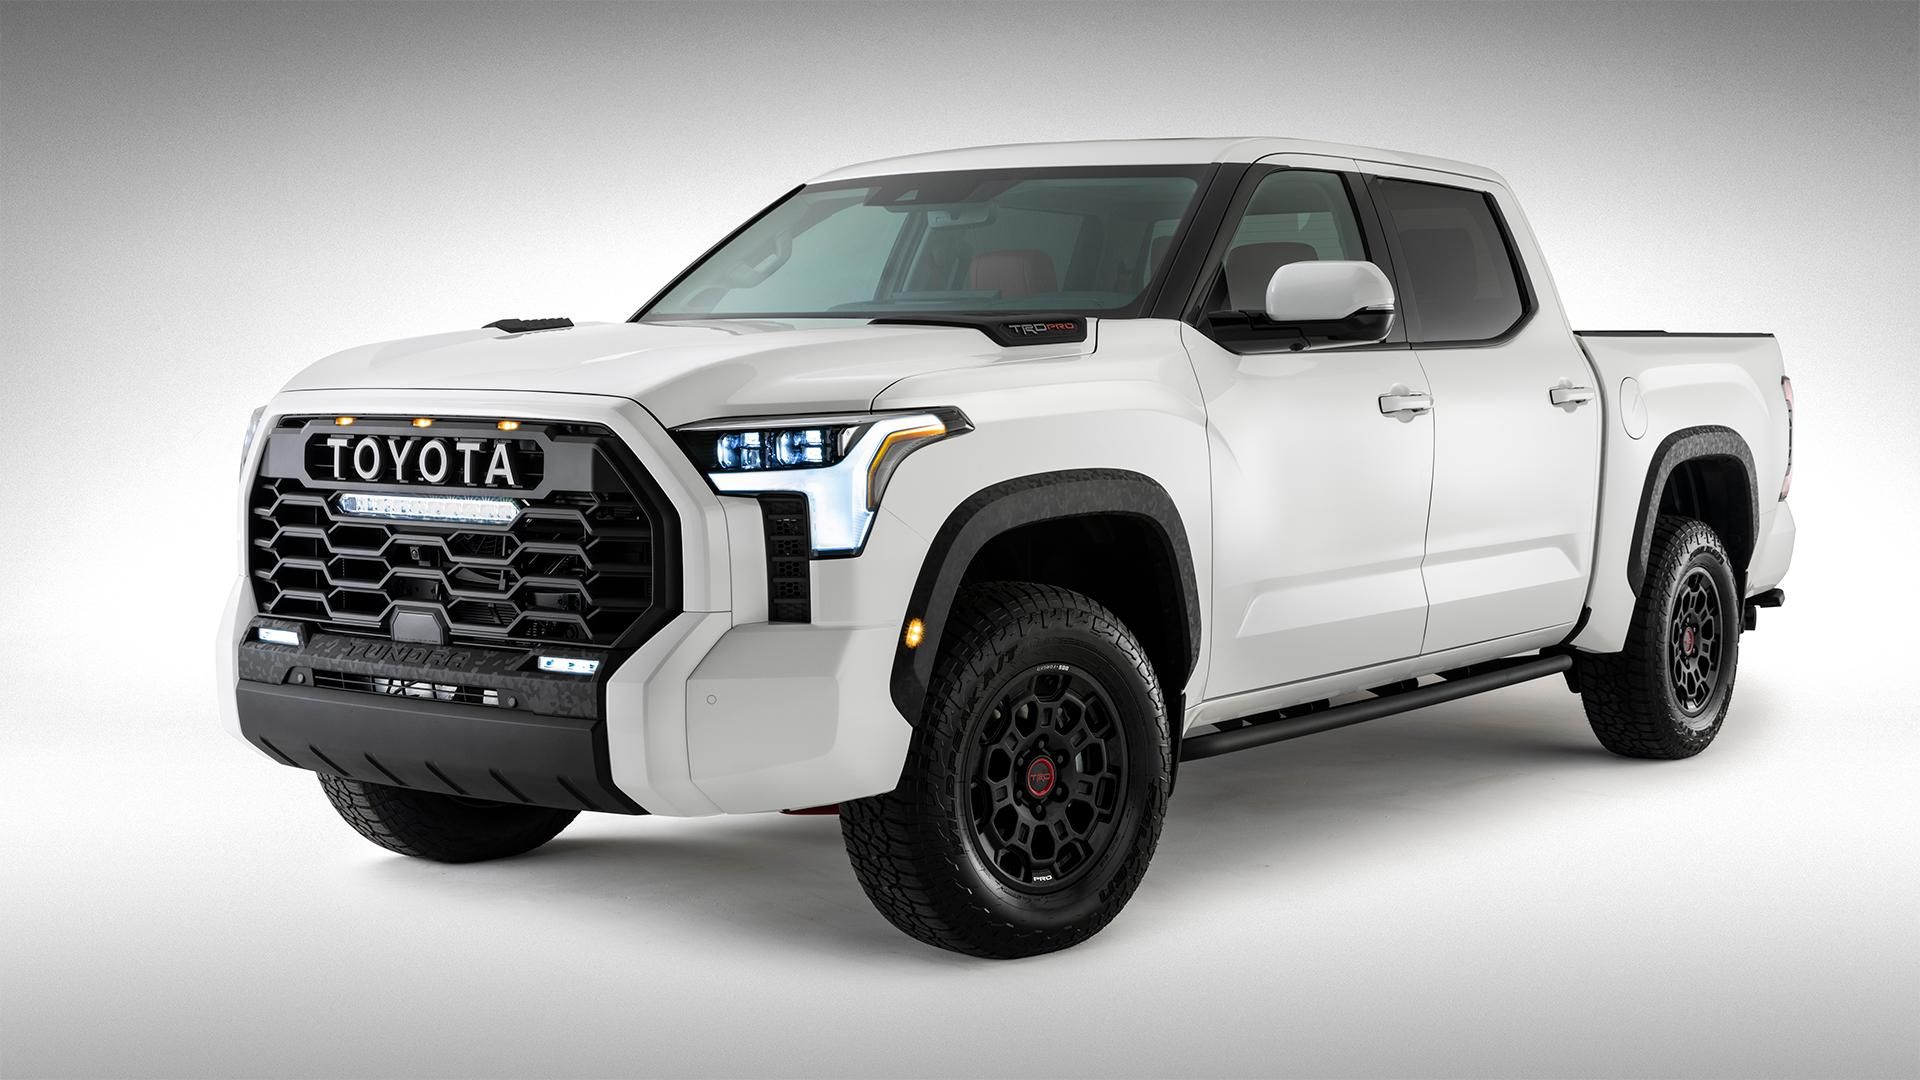 The All New 2022 Toyota Tundra coming to Tony Graham Toyota this Fall 2022